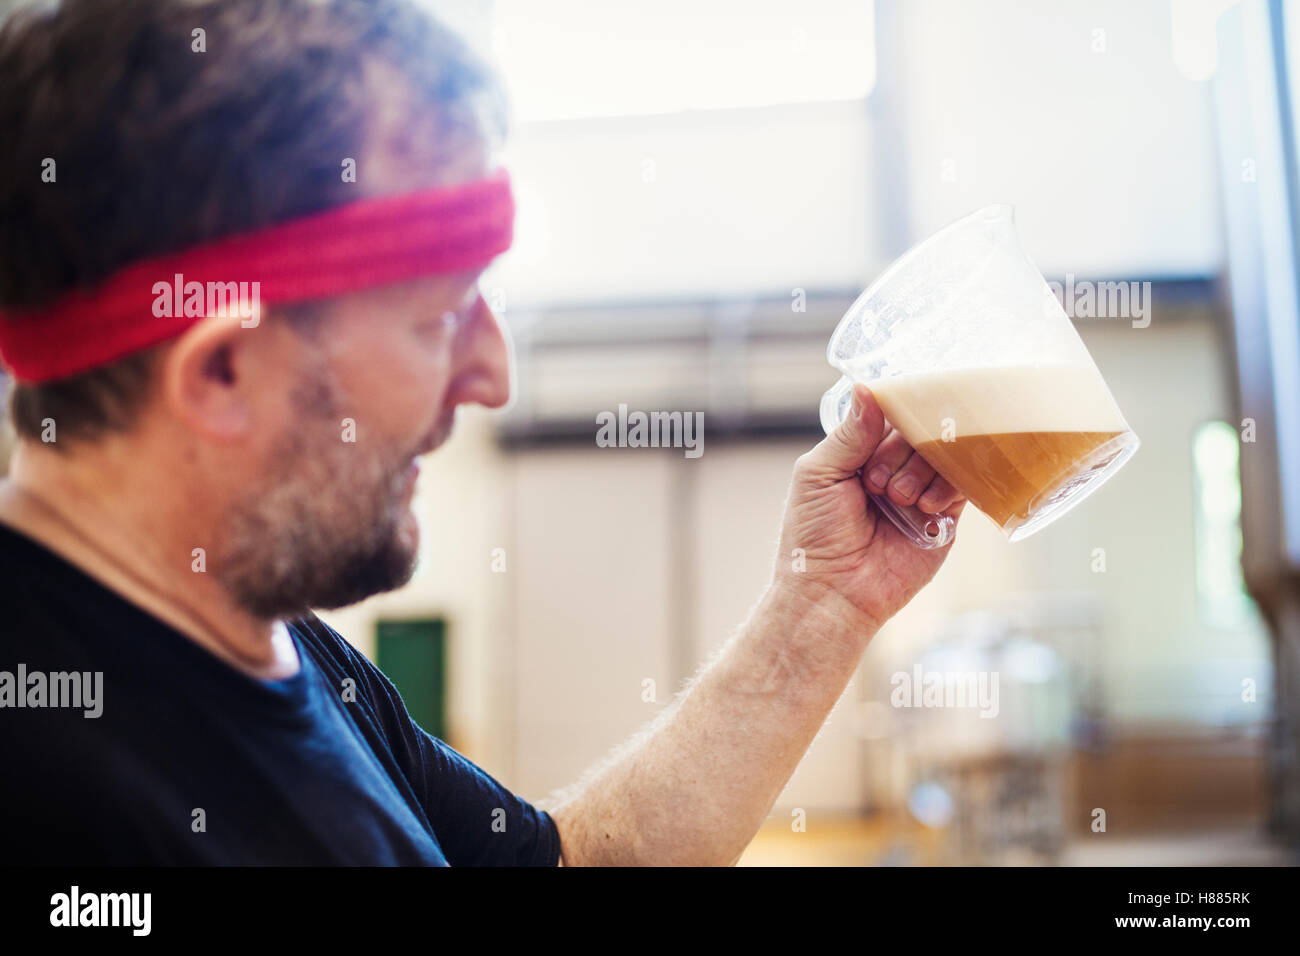 A brewer with a red bandana taking a jug of brewing beer and examining it. - Stock Image